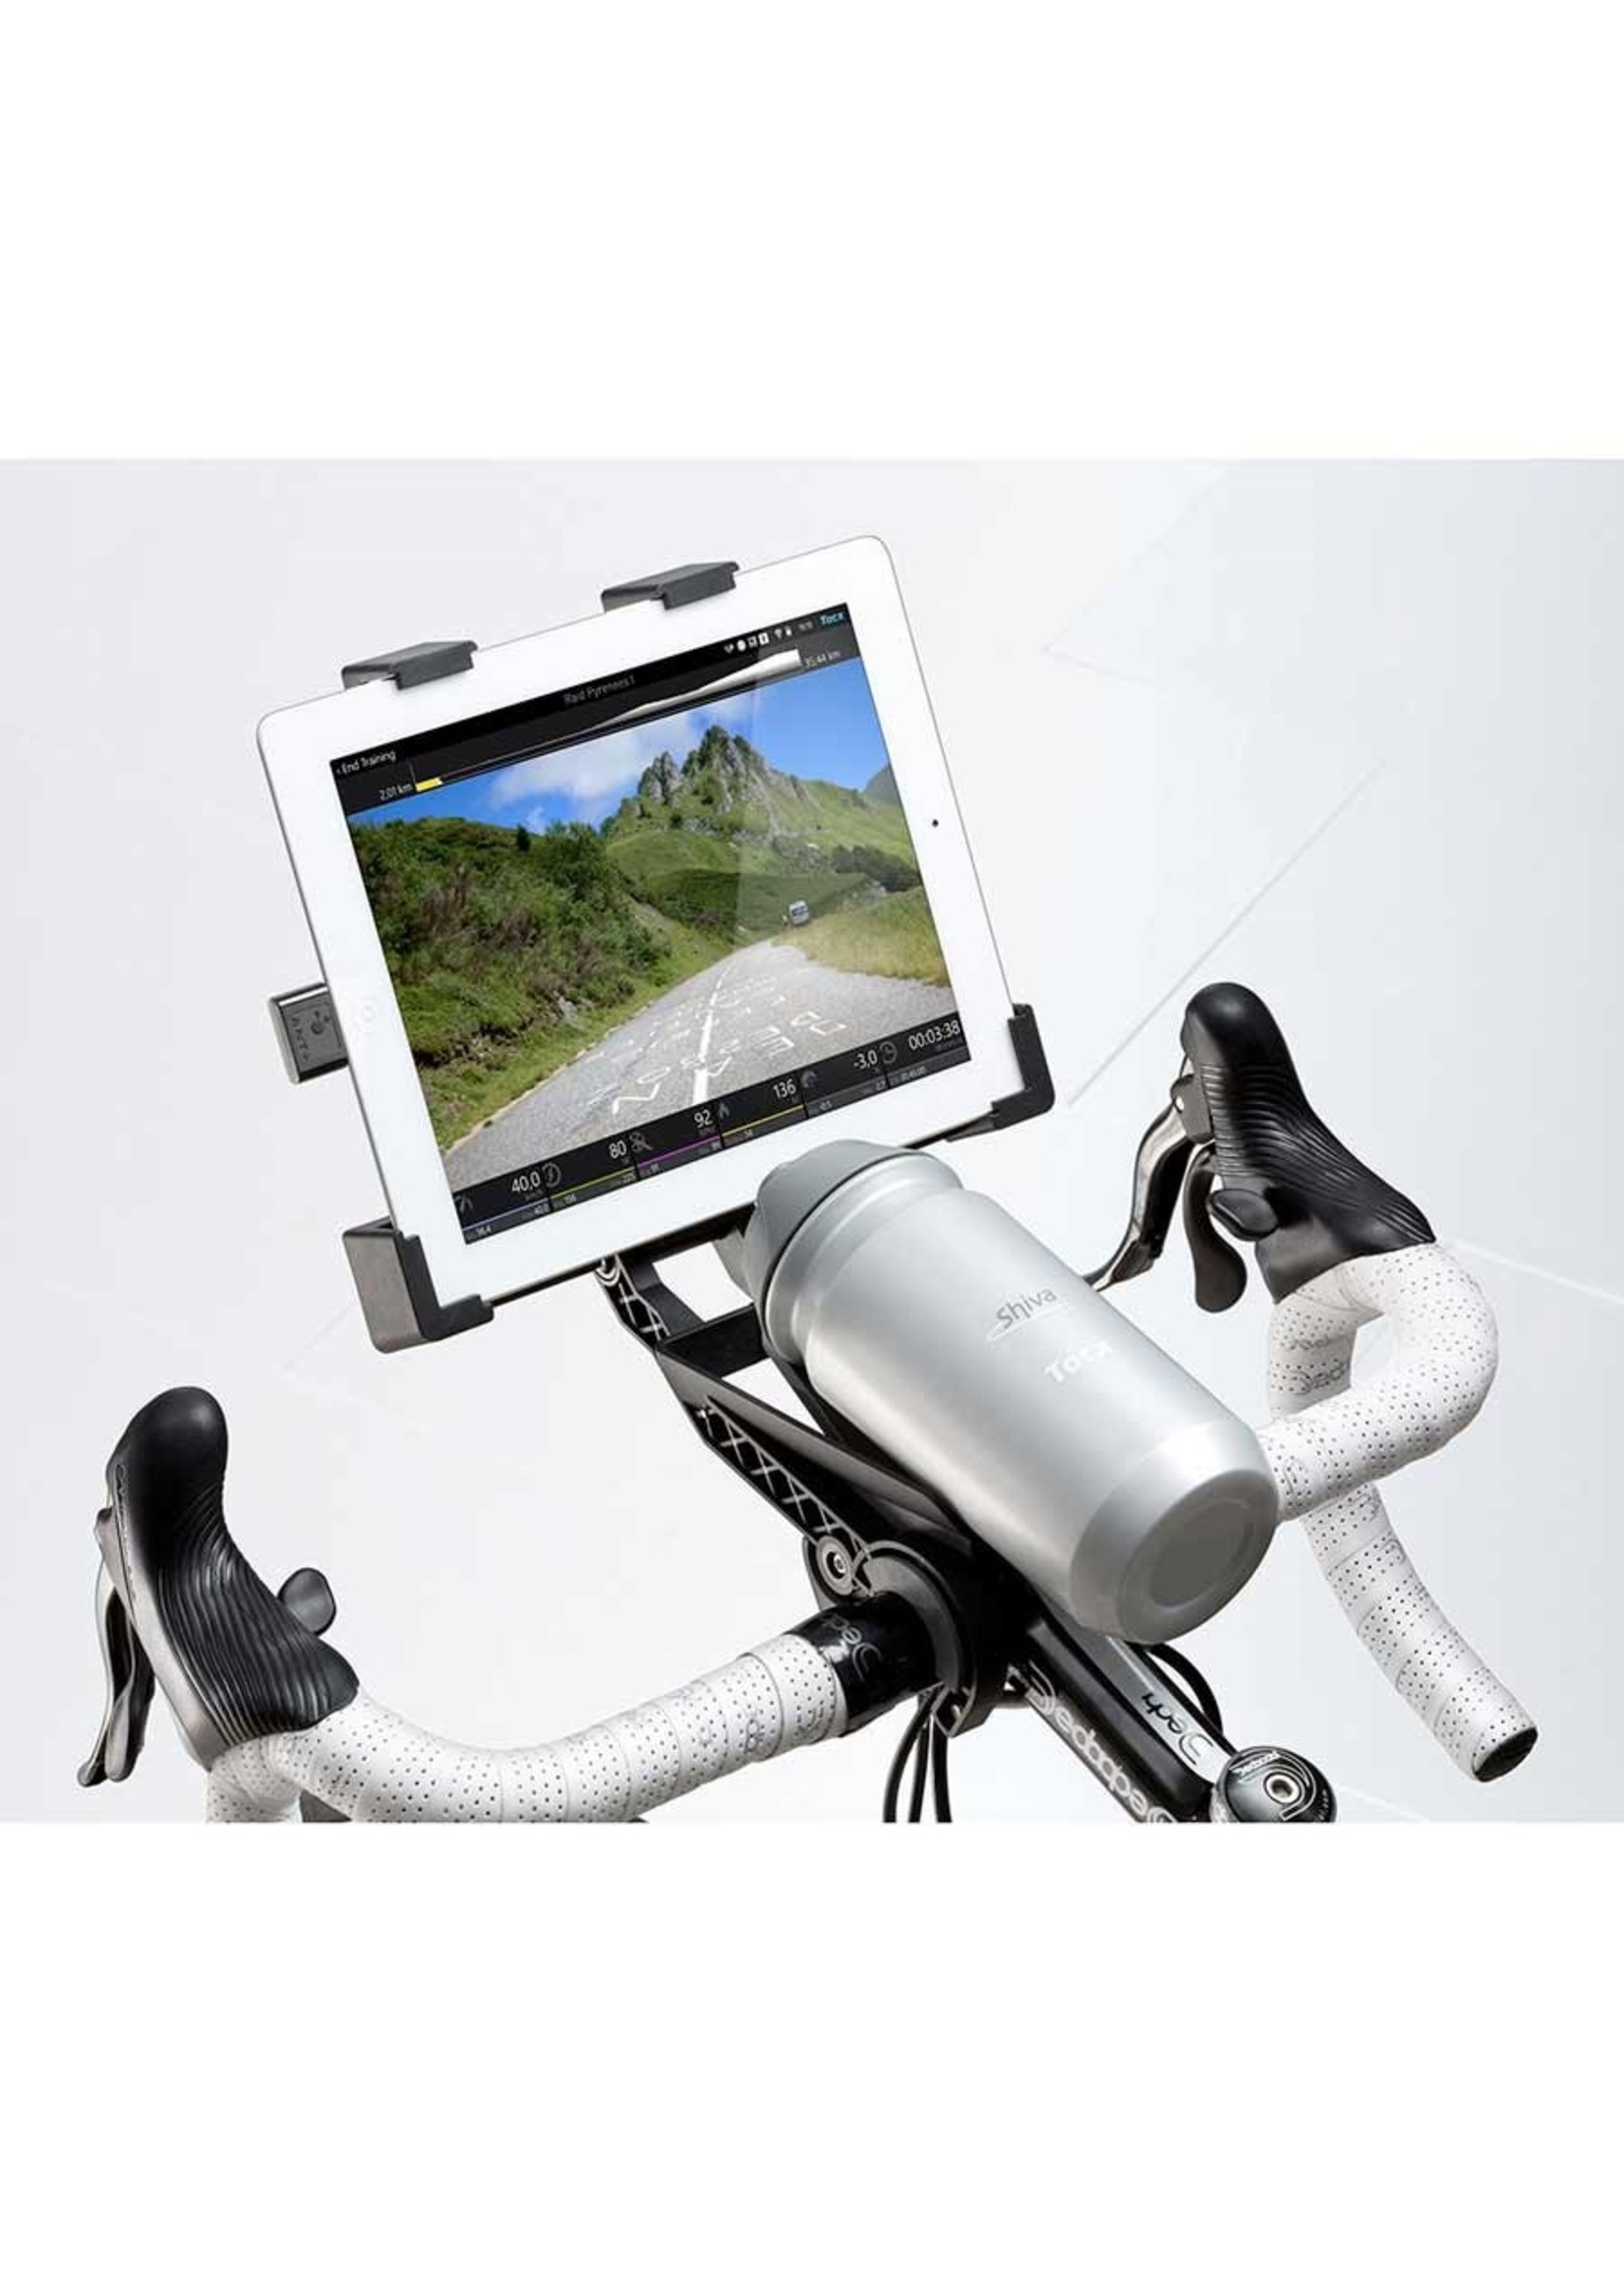 Tacx Tacx Tablet support